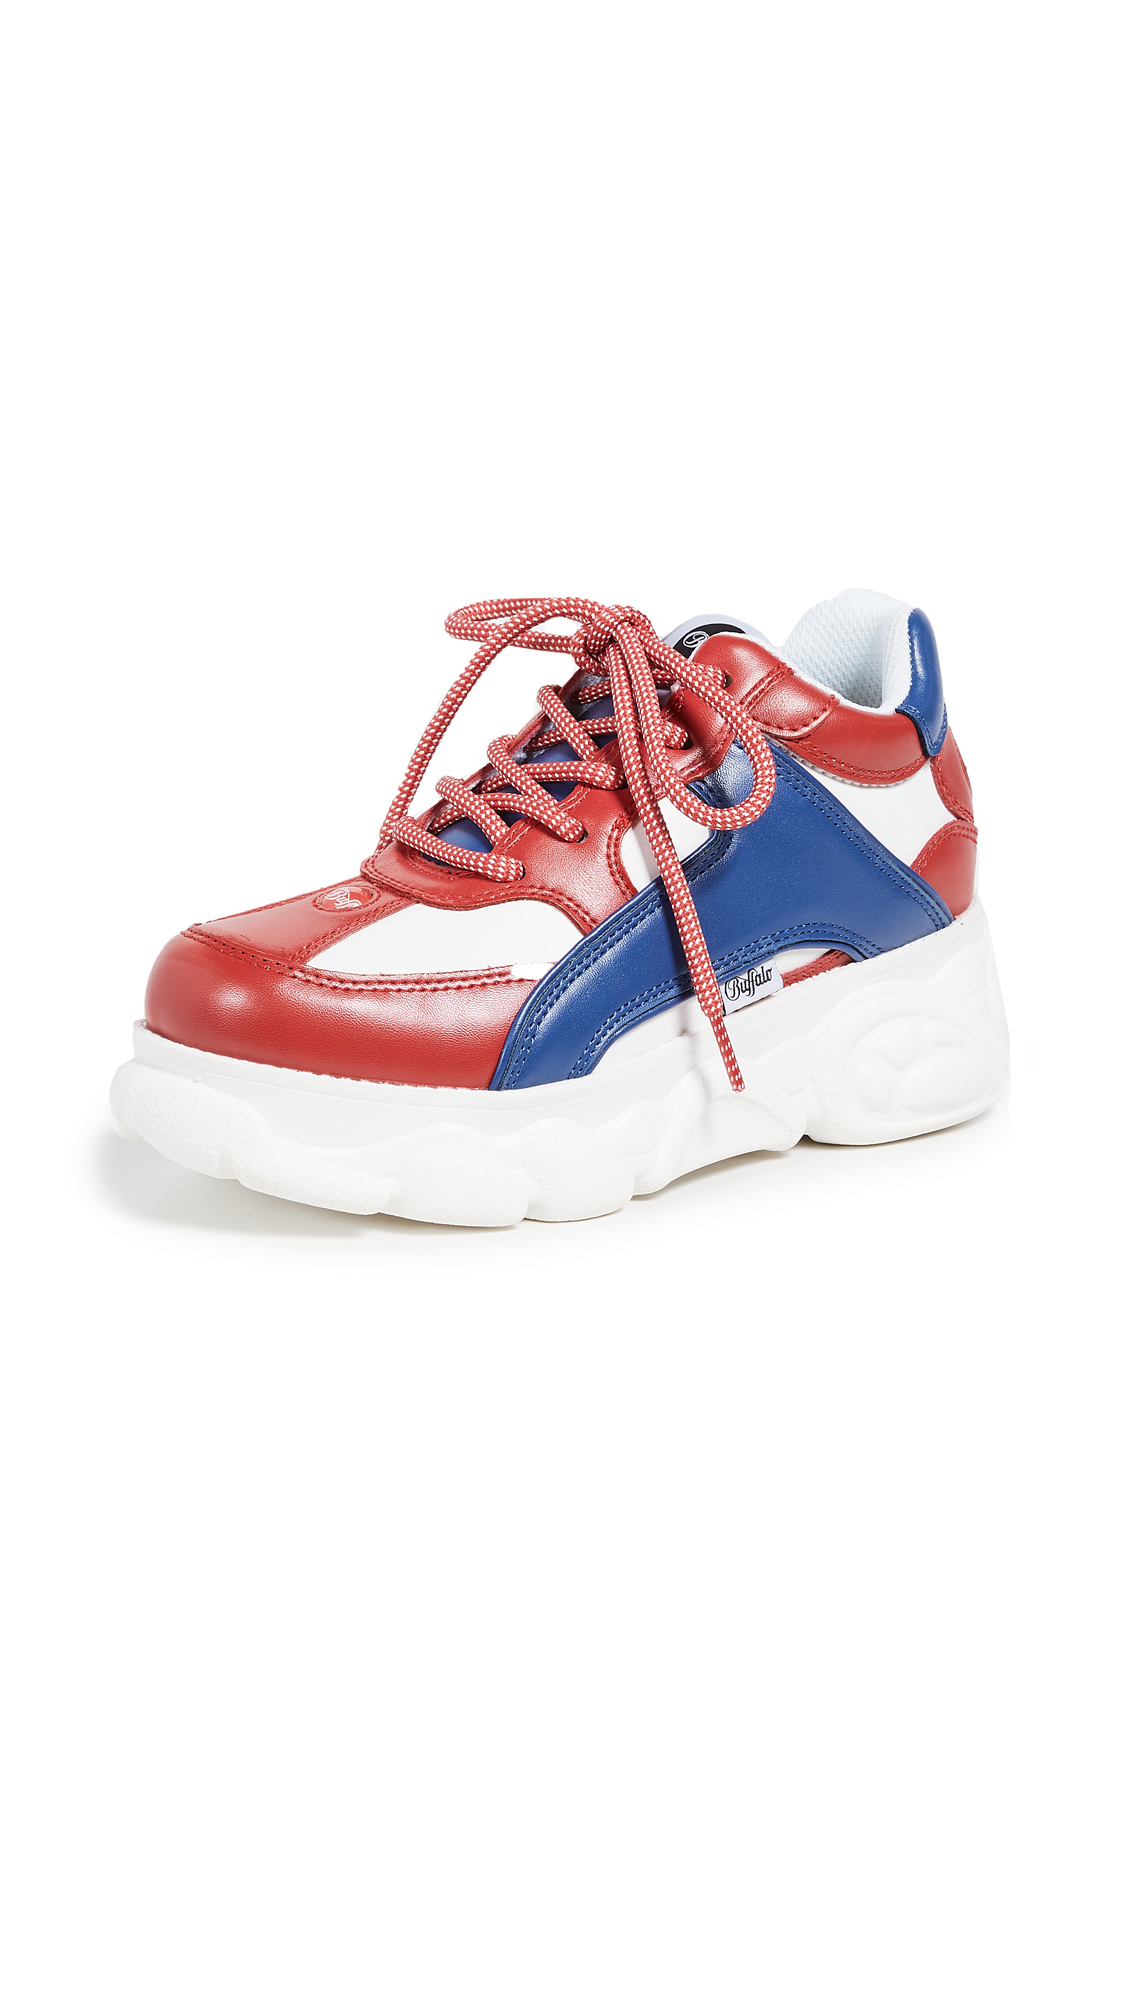 Buffalo London Colby Sneakers - Red/Blue/White